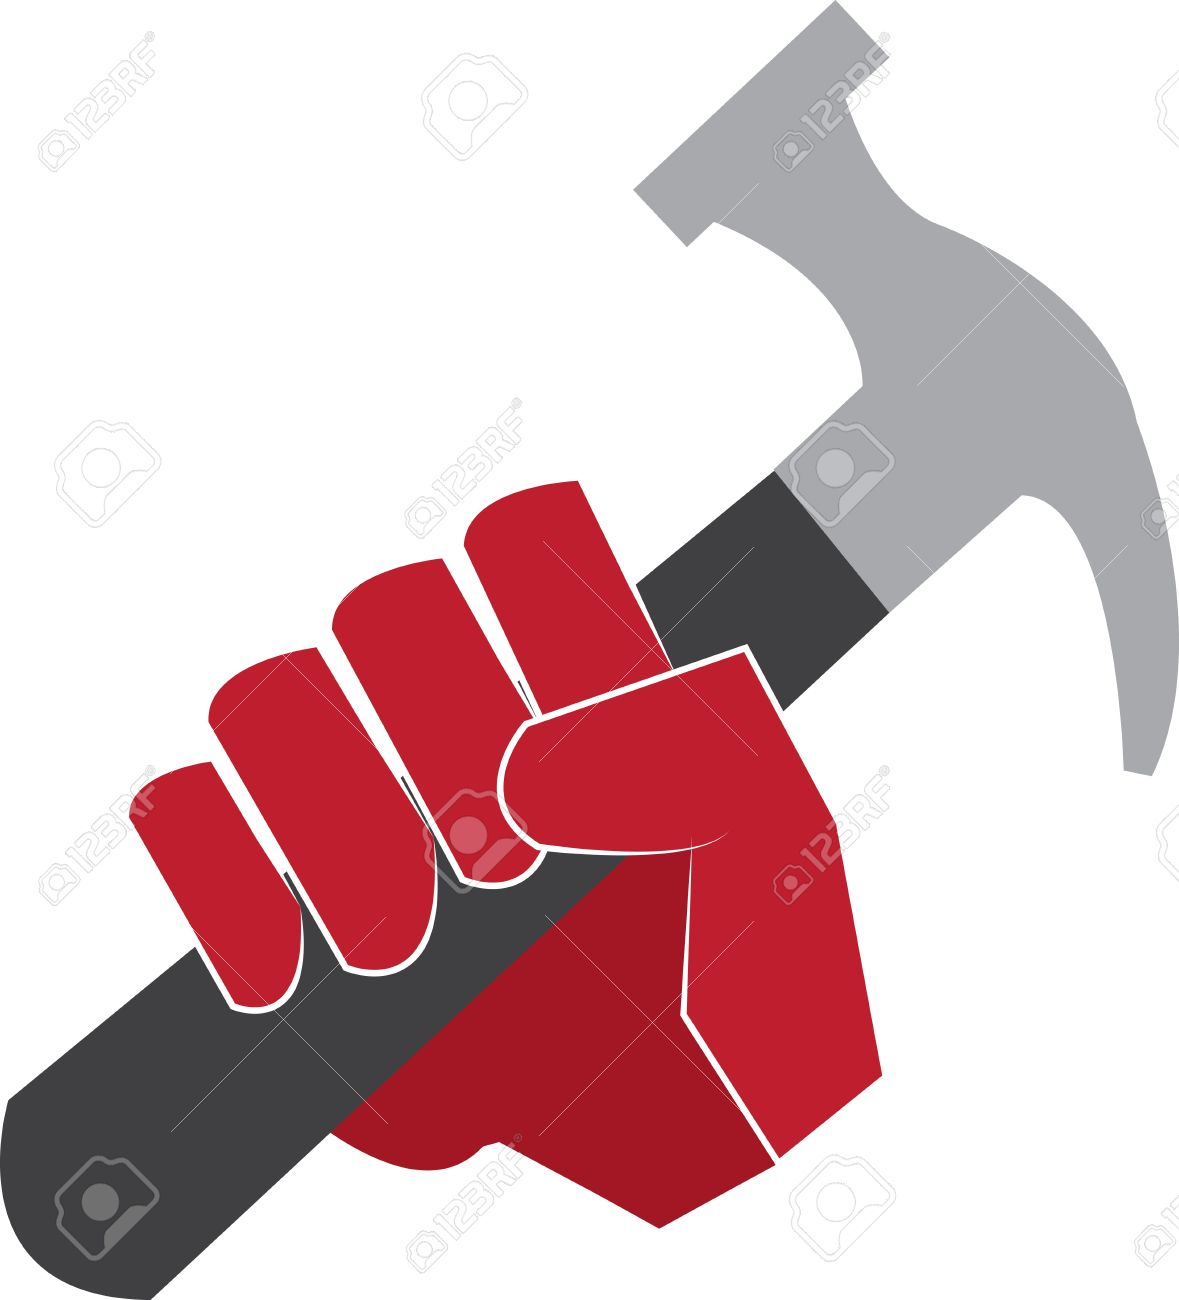 Hand holding hammer clipart.